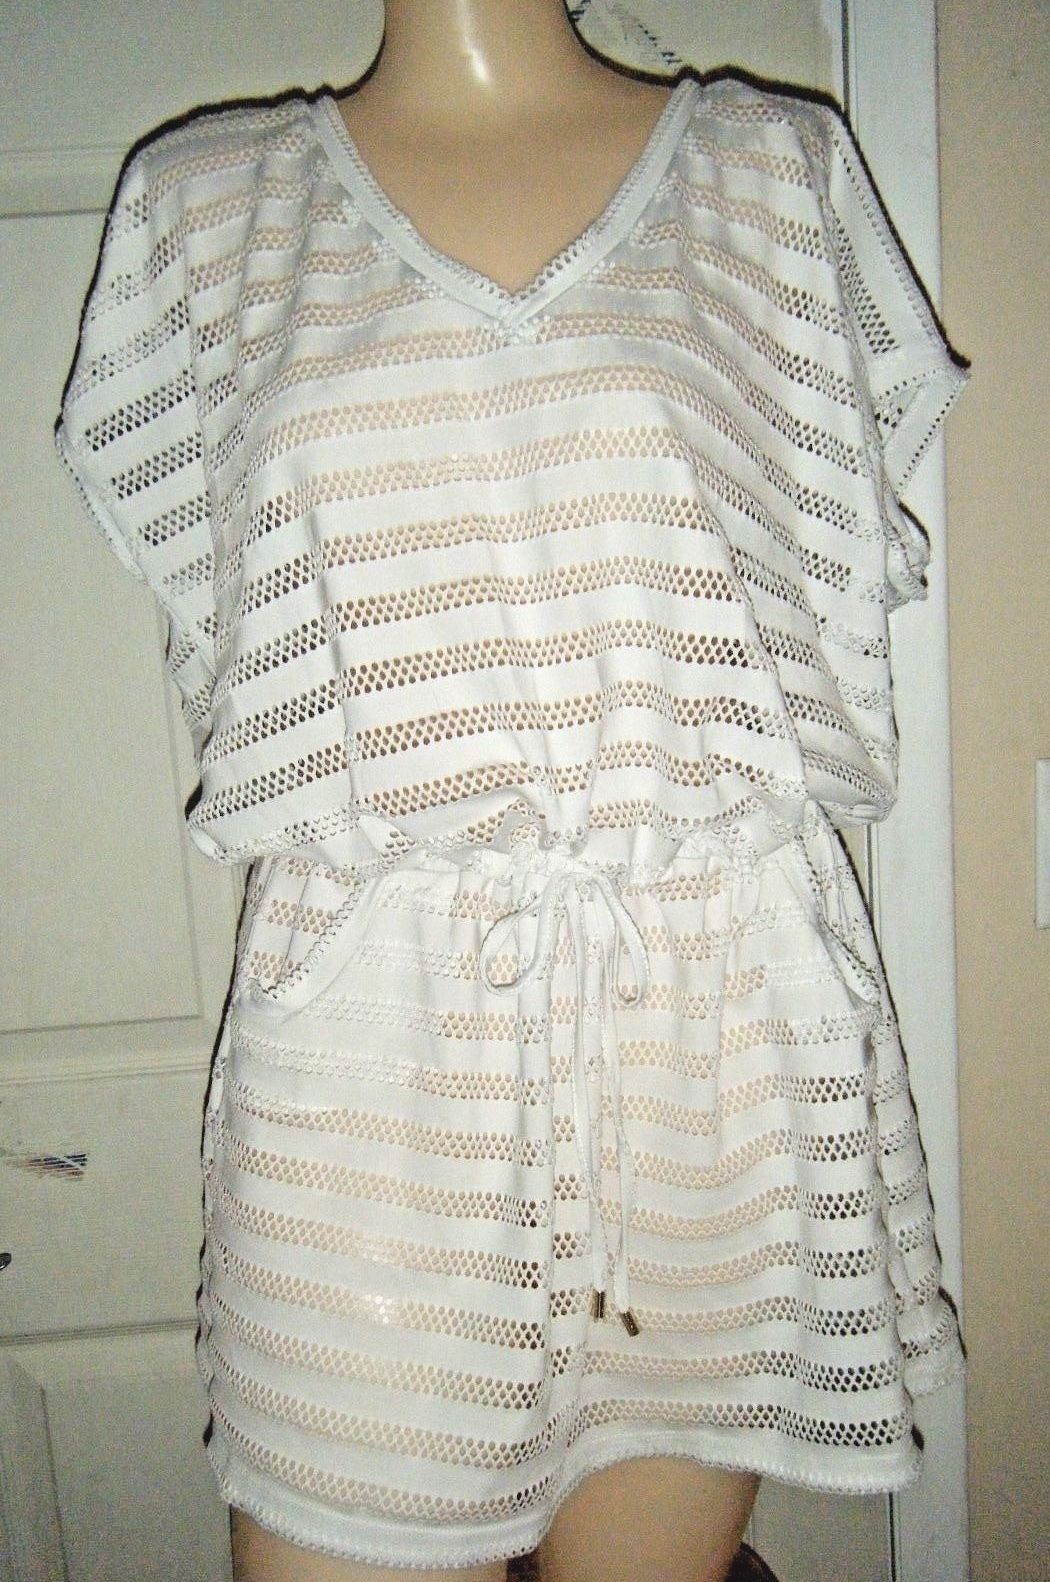 CALVIN KLEIN OFF-WHITE CAP SLEEVE LACE STRETCH POLYESTER TOP/MINI DRESS SZ L